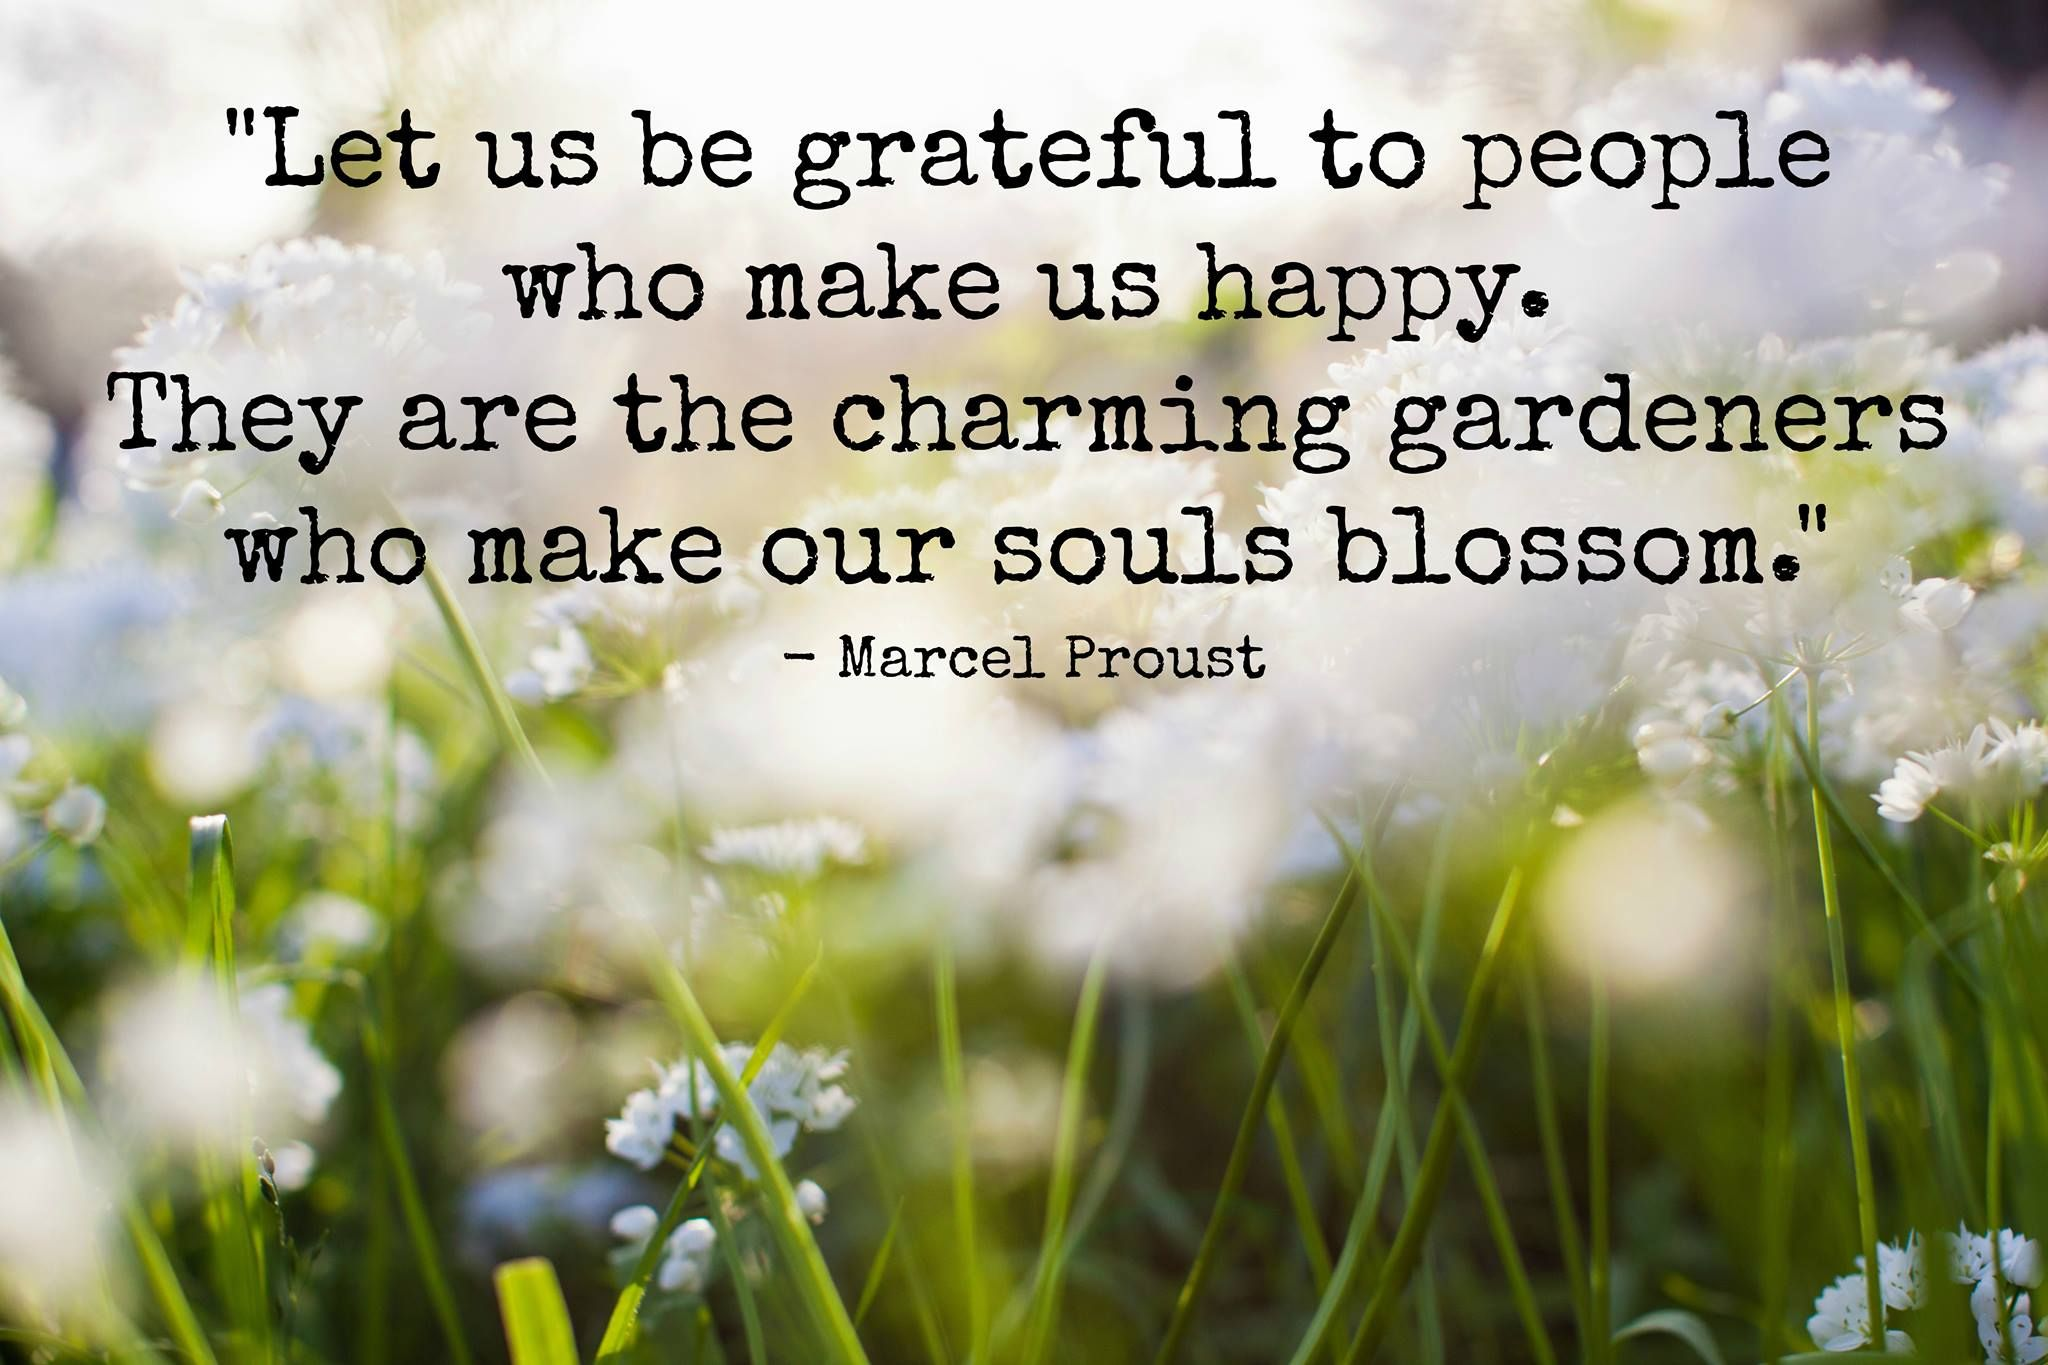 Words of wisdom from Marcel Proust.